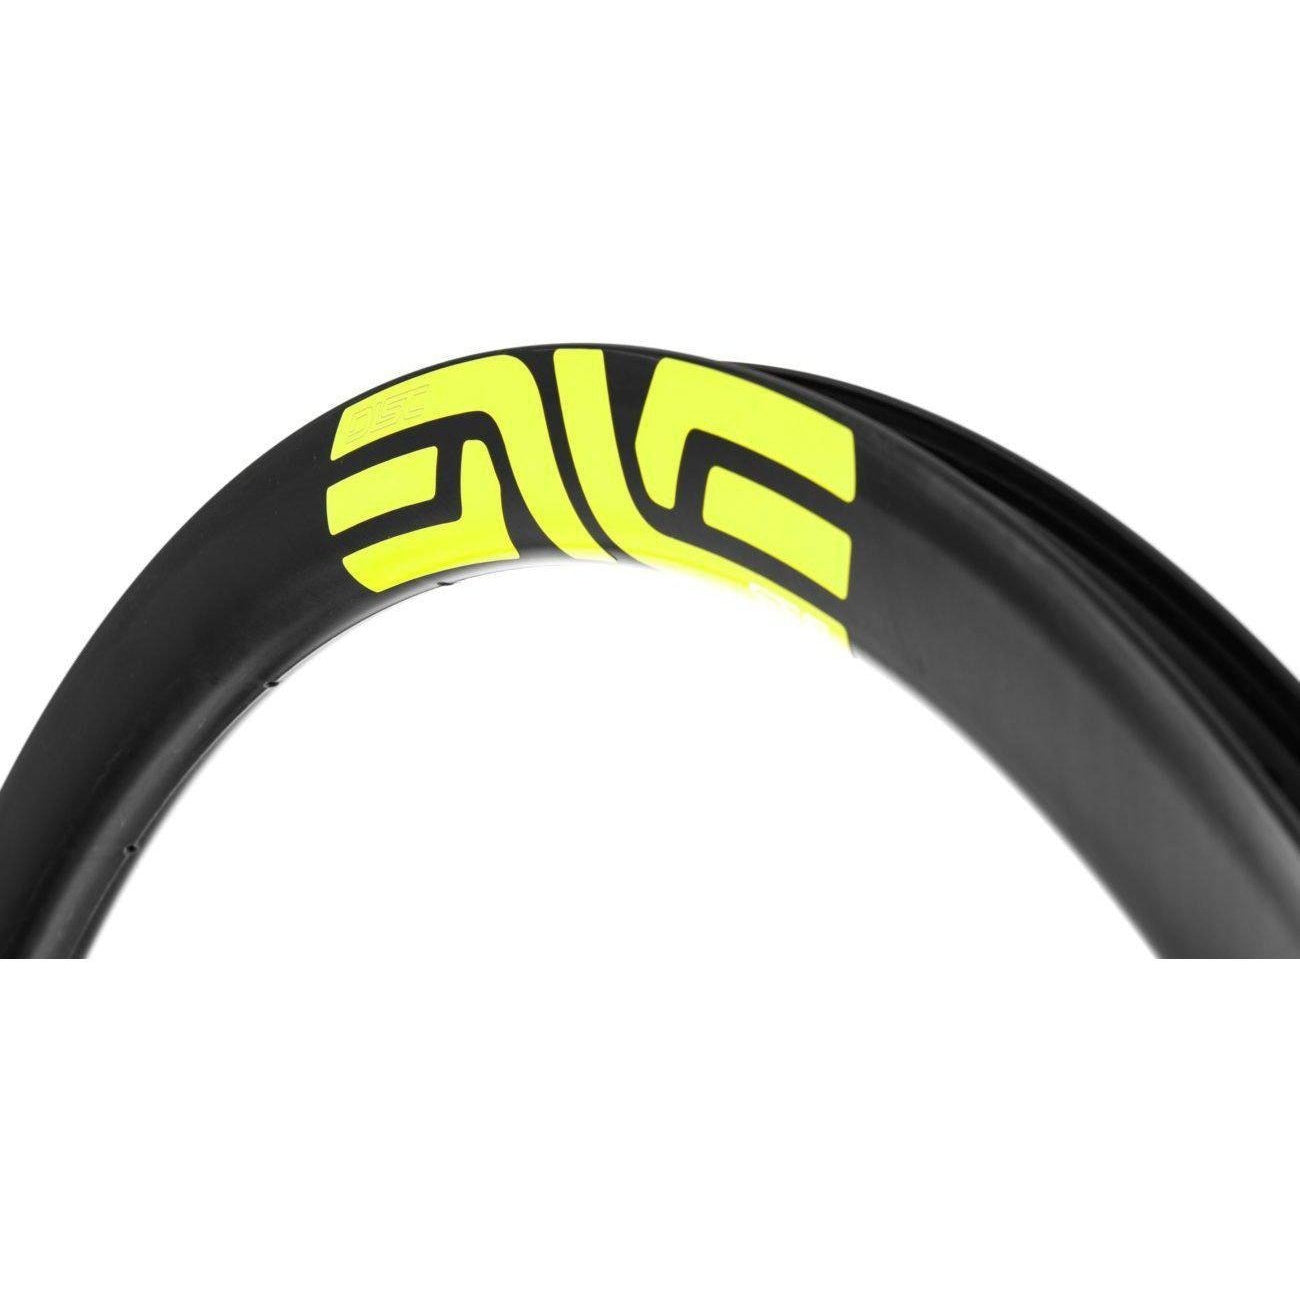 ENVE-ENVE SES 3.4 Disc Decals-SES 3.4 Disc-Front (38mm)-Neon Yellow-EN70001000748-saddleback-elite-performance-cycling